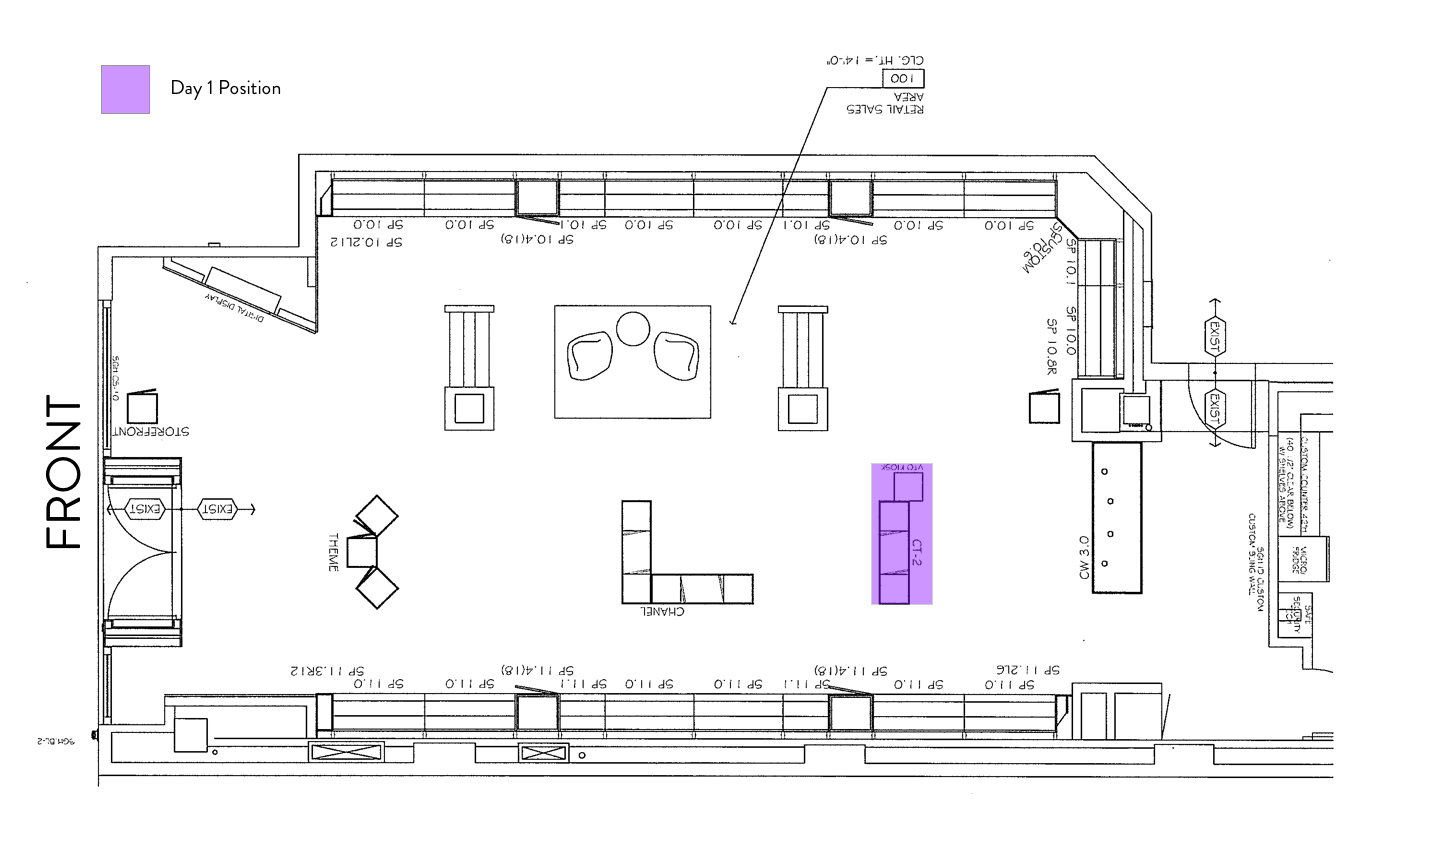 Sunglass Hut Floorplan – Kiosk – Day 1